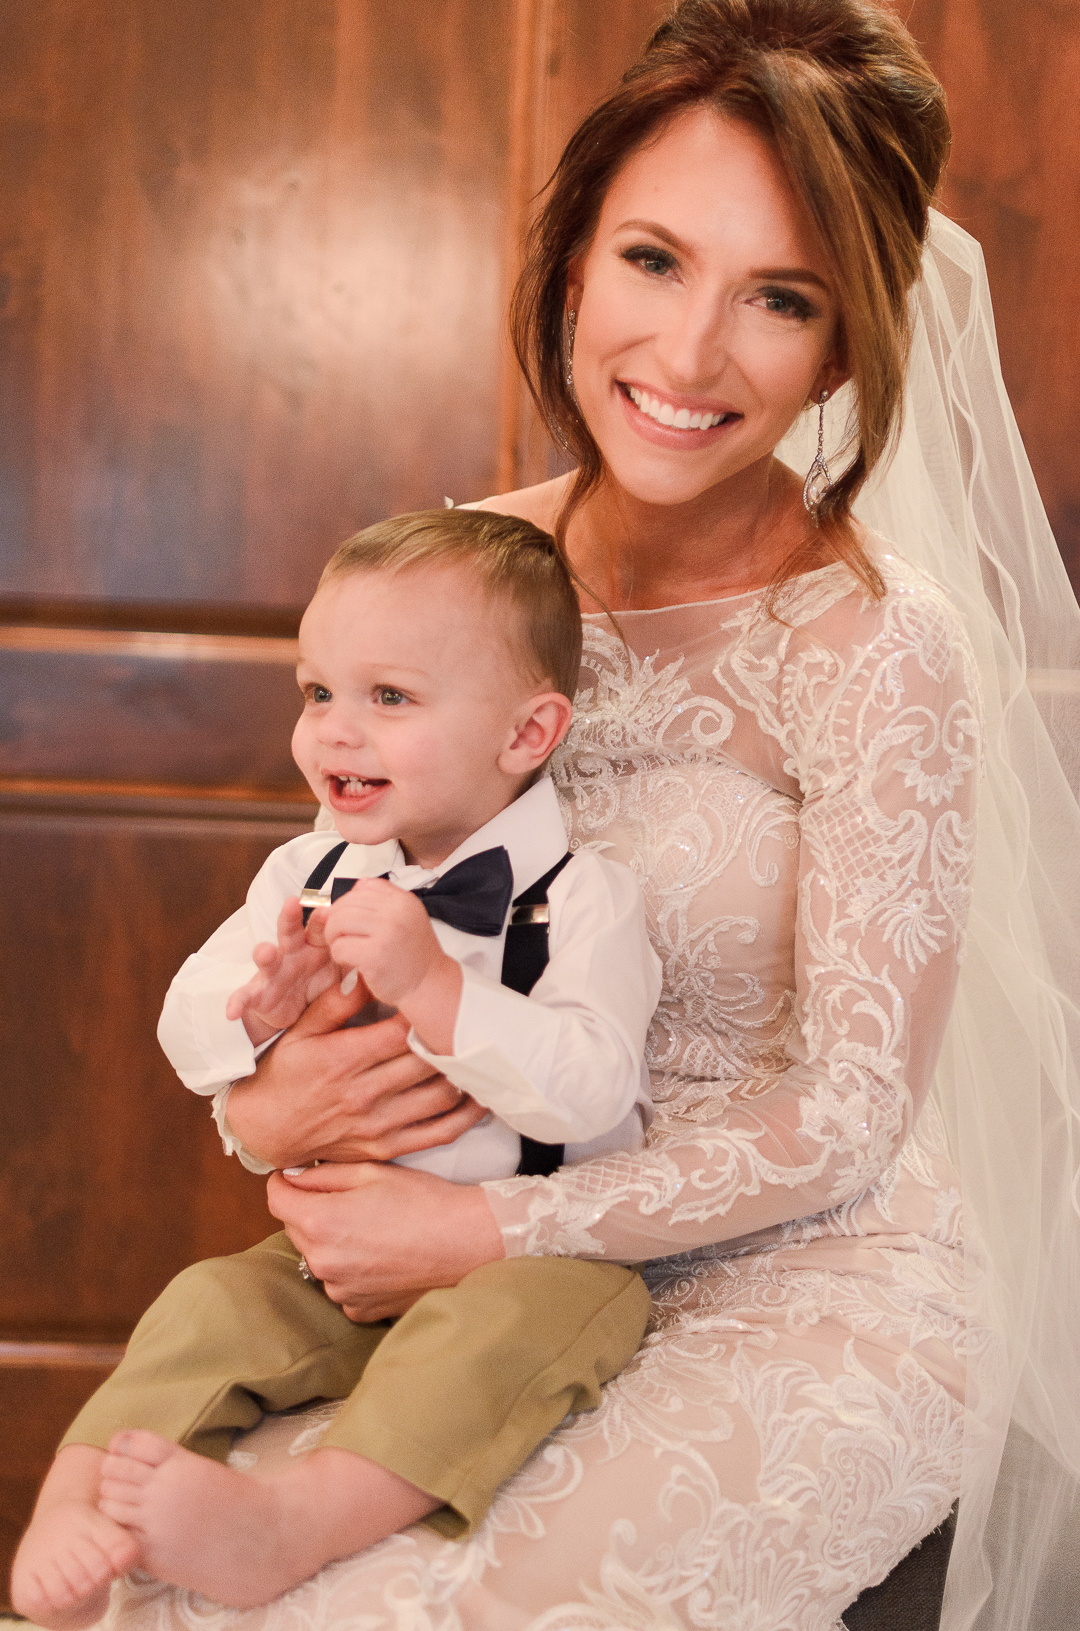 Oh did I forget too mention mom and dad got married this year?!? Jax was the best ring bearer ever! He refused to wear shoes that day- choose your battles mamas!